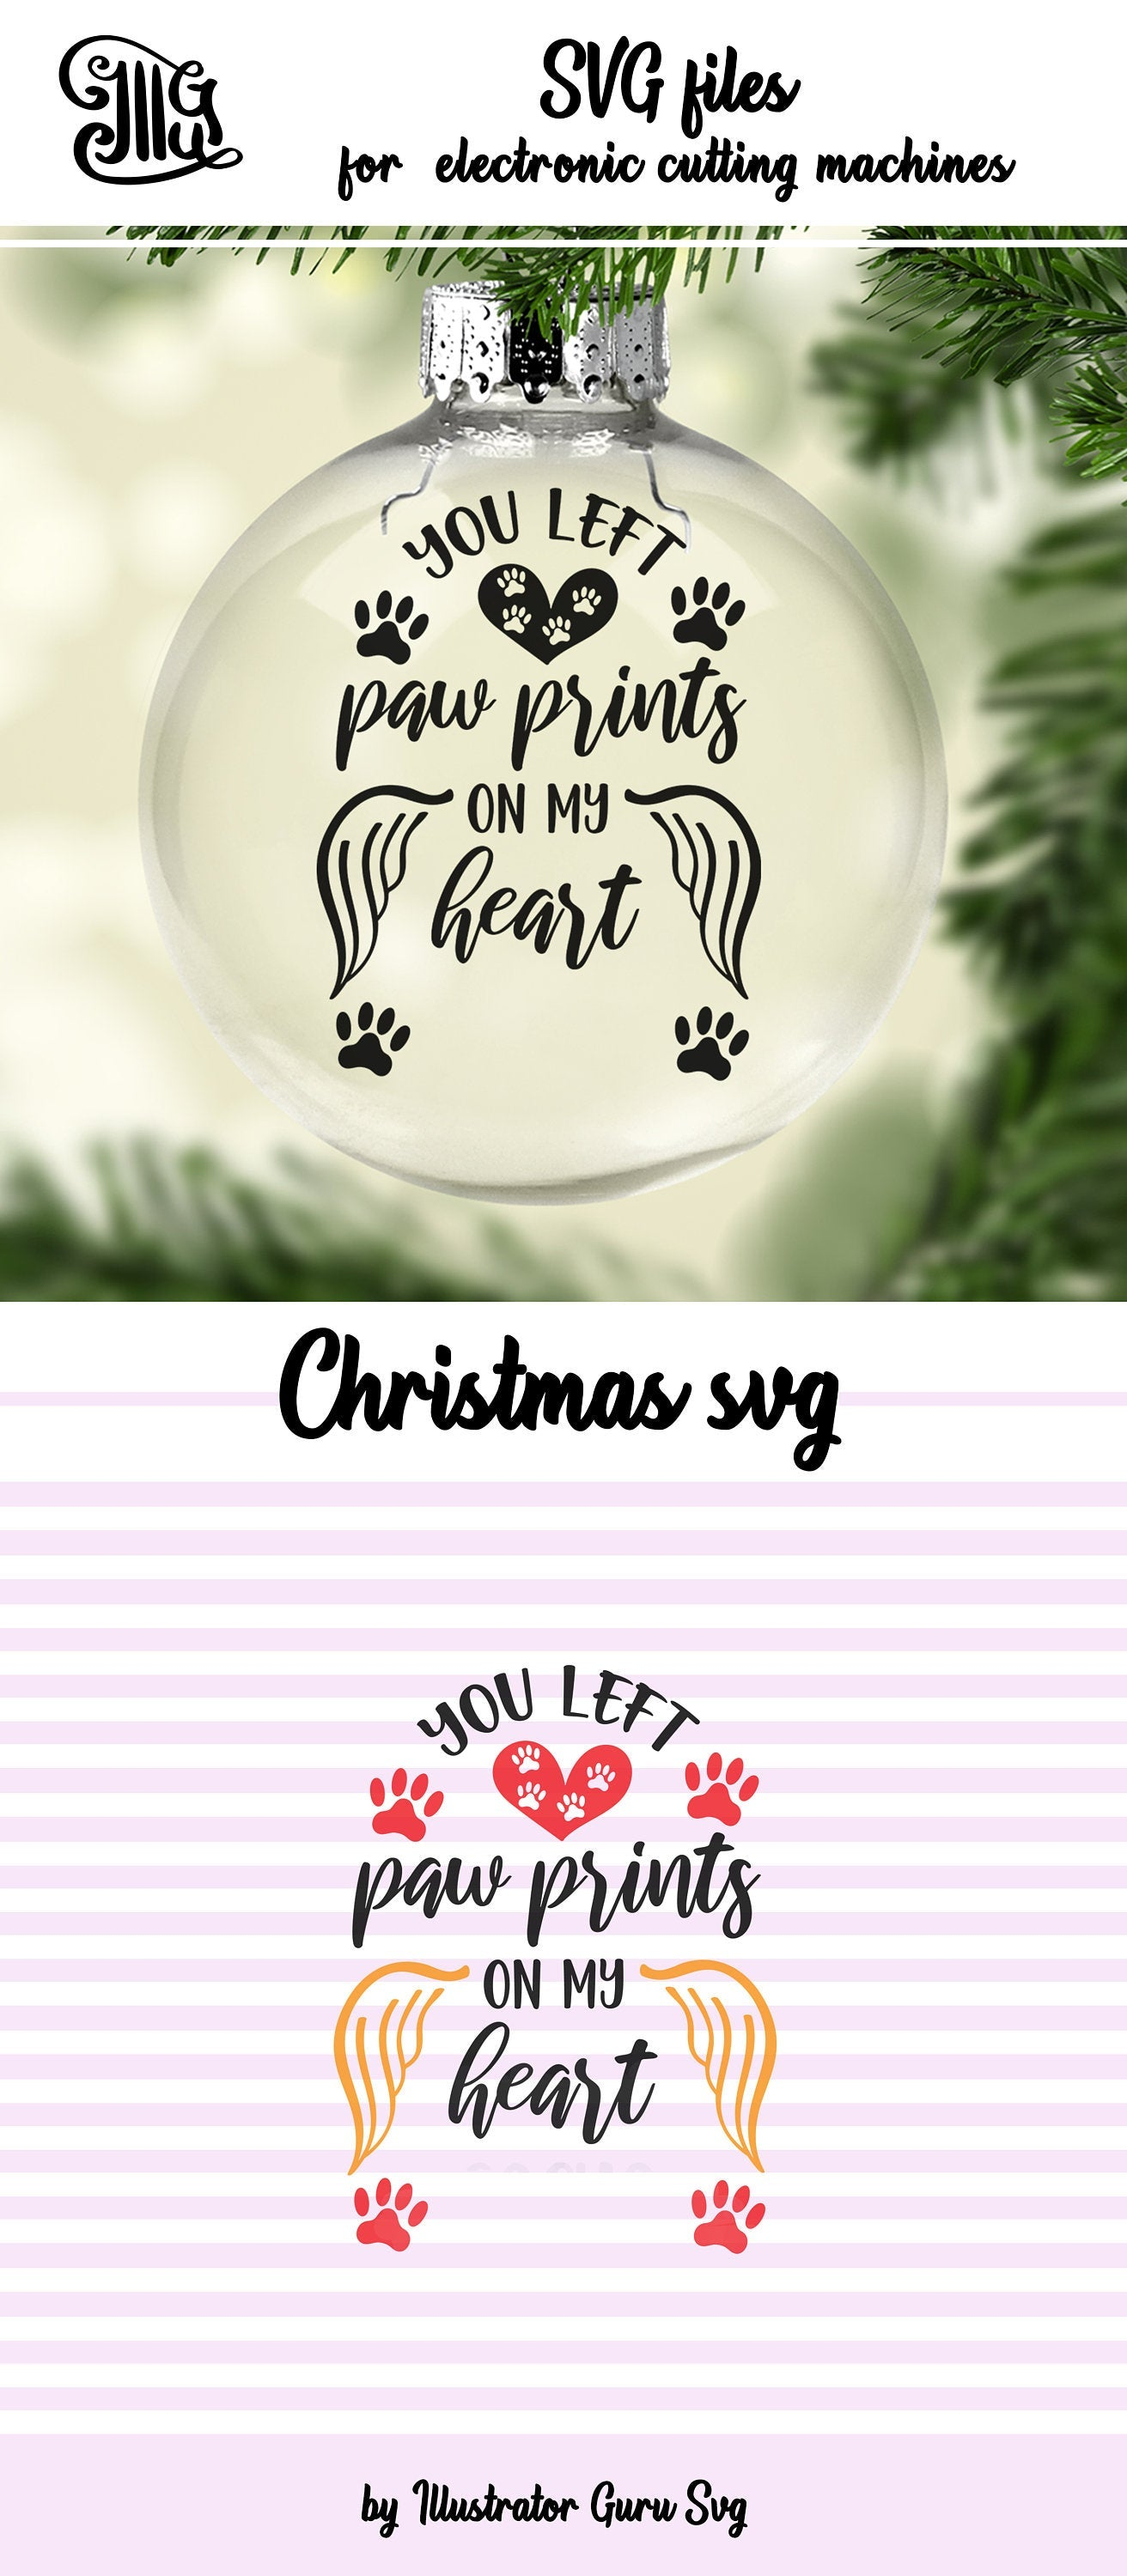 You left paw prints on my heart svg, pet Memorial svg, Christmas memorial svg, dog memorial svg, cat memorial svg, ornaments svg-by Illustrator Guru